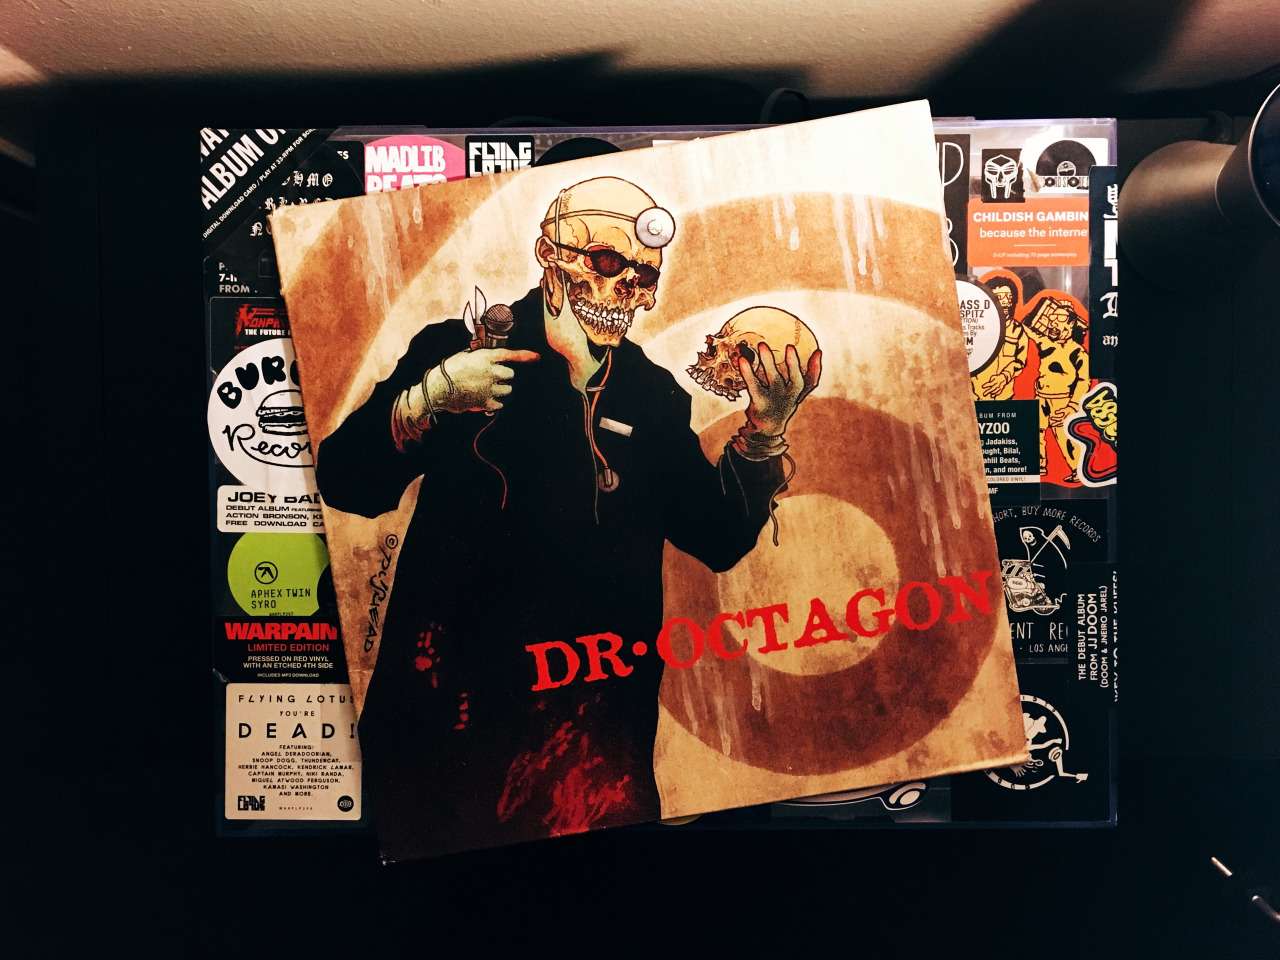 droctagon koolkeith hiphop undergroundhiphop vinyl vinyljunkie vinylcollection vinylrecord recordcollector records recordcollecting music